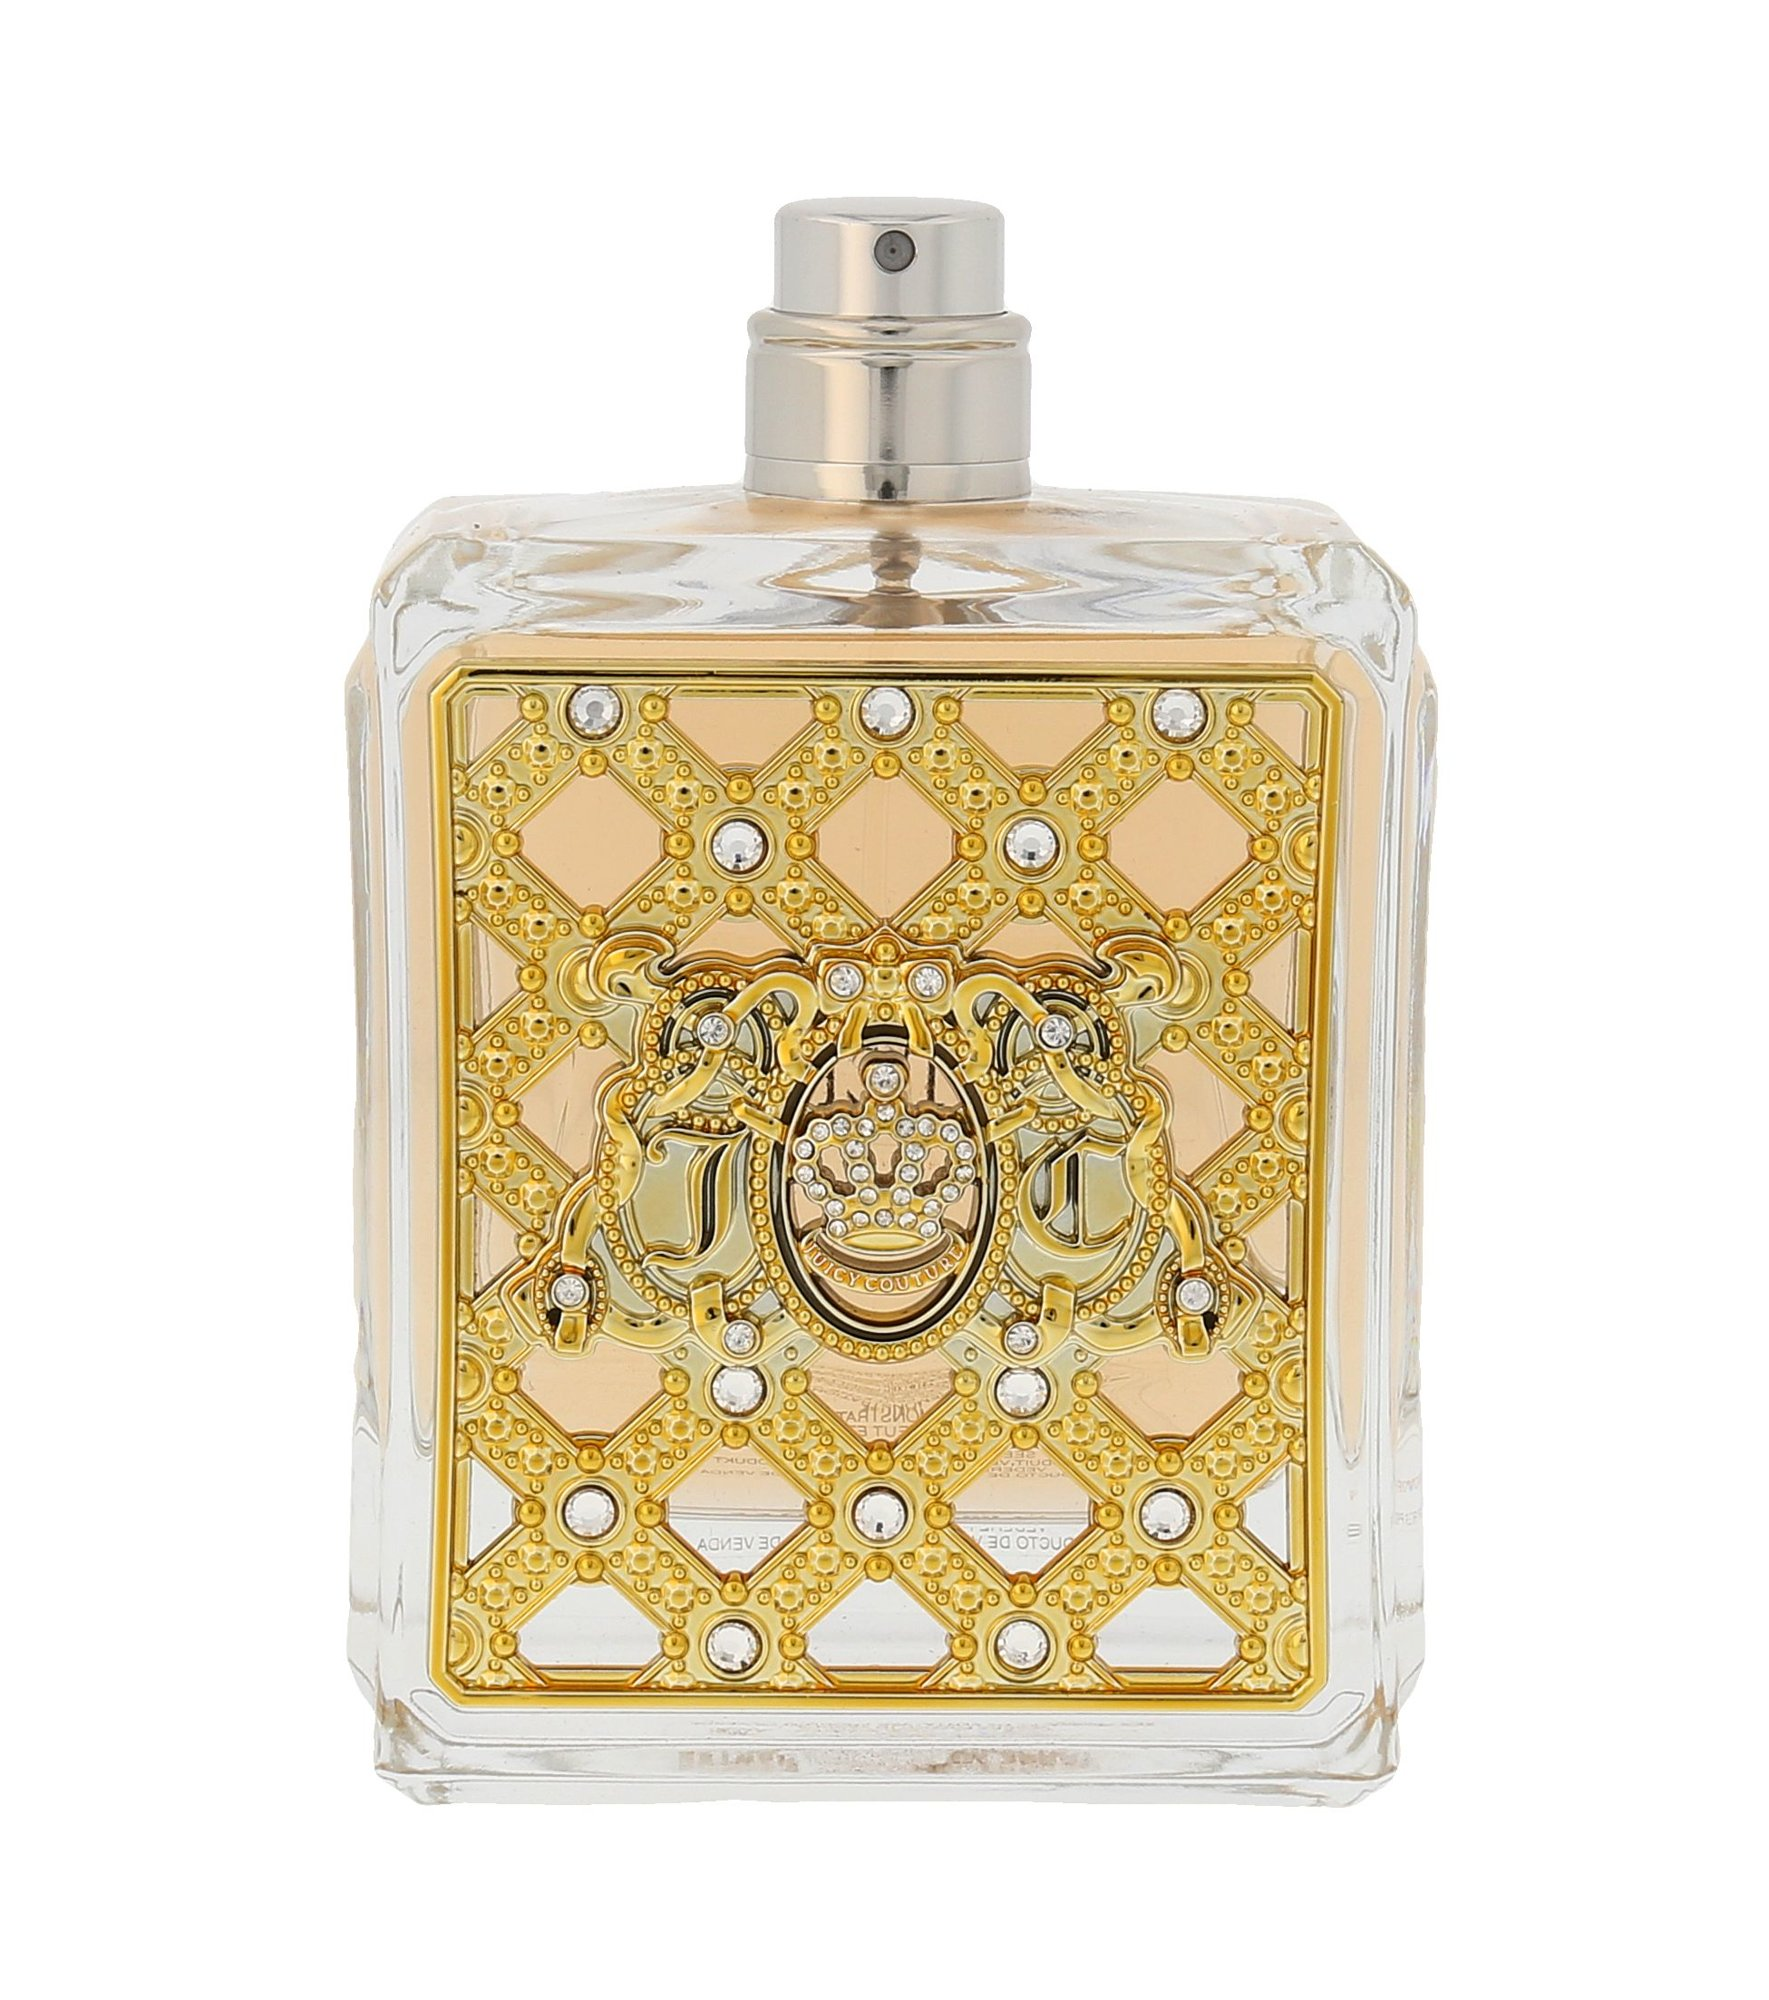 Juicy Couture Viva la Juicy Extrait de Parfum EDP 100ml